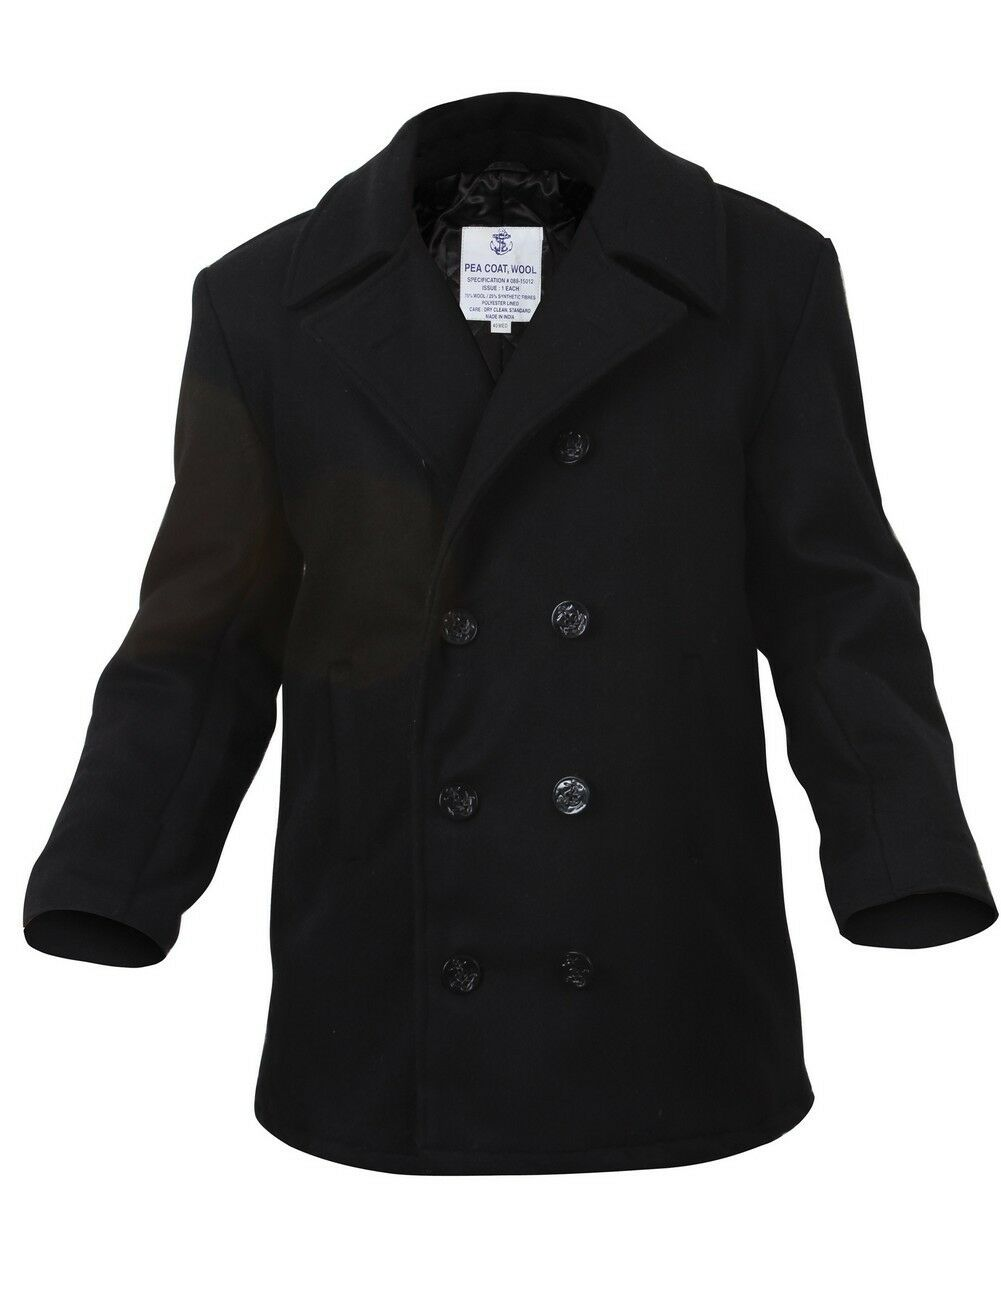 Rothco US Navy Type Pea Coat - 7472 Black S | eBay